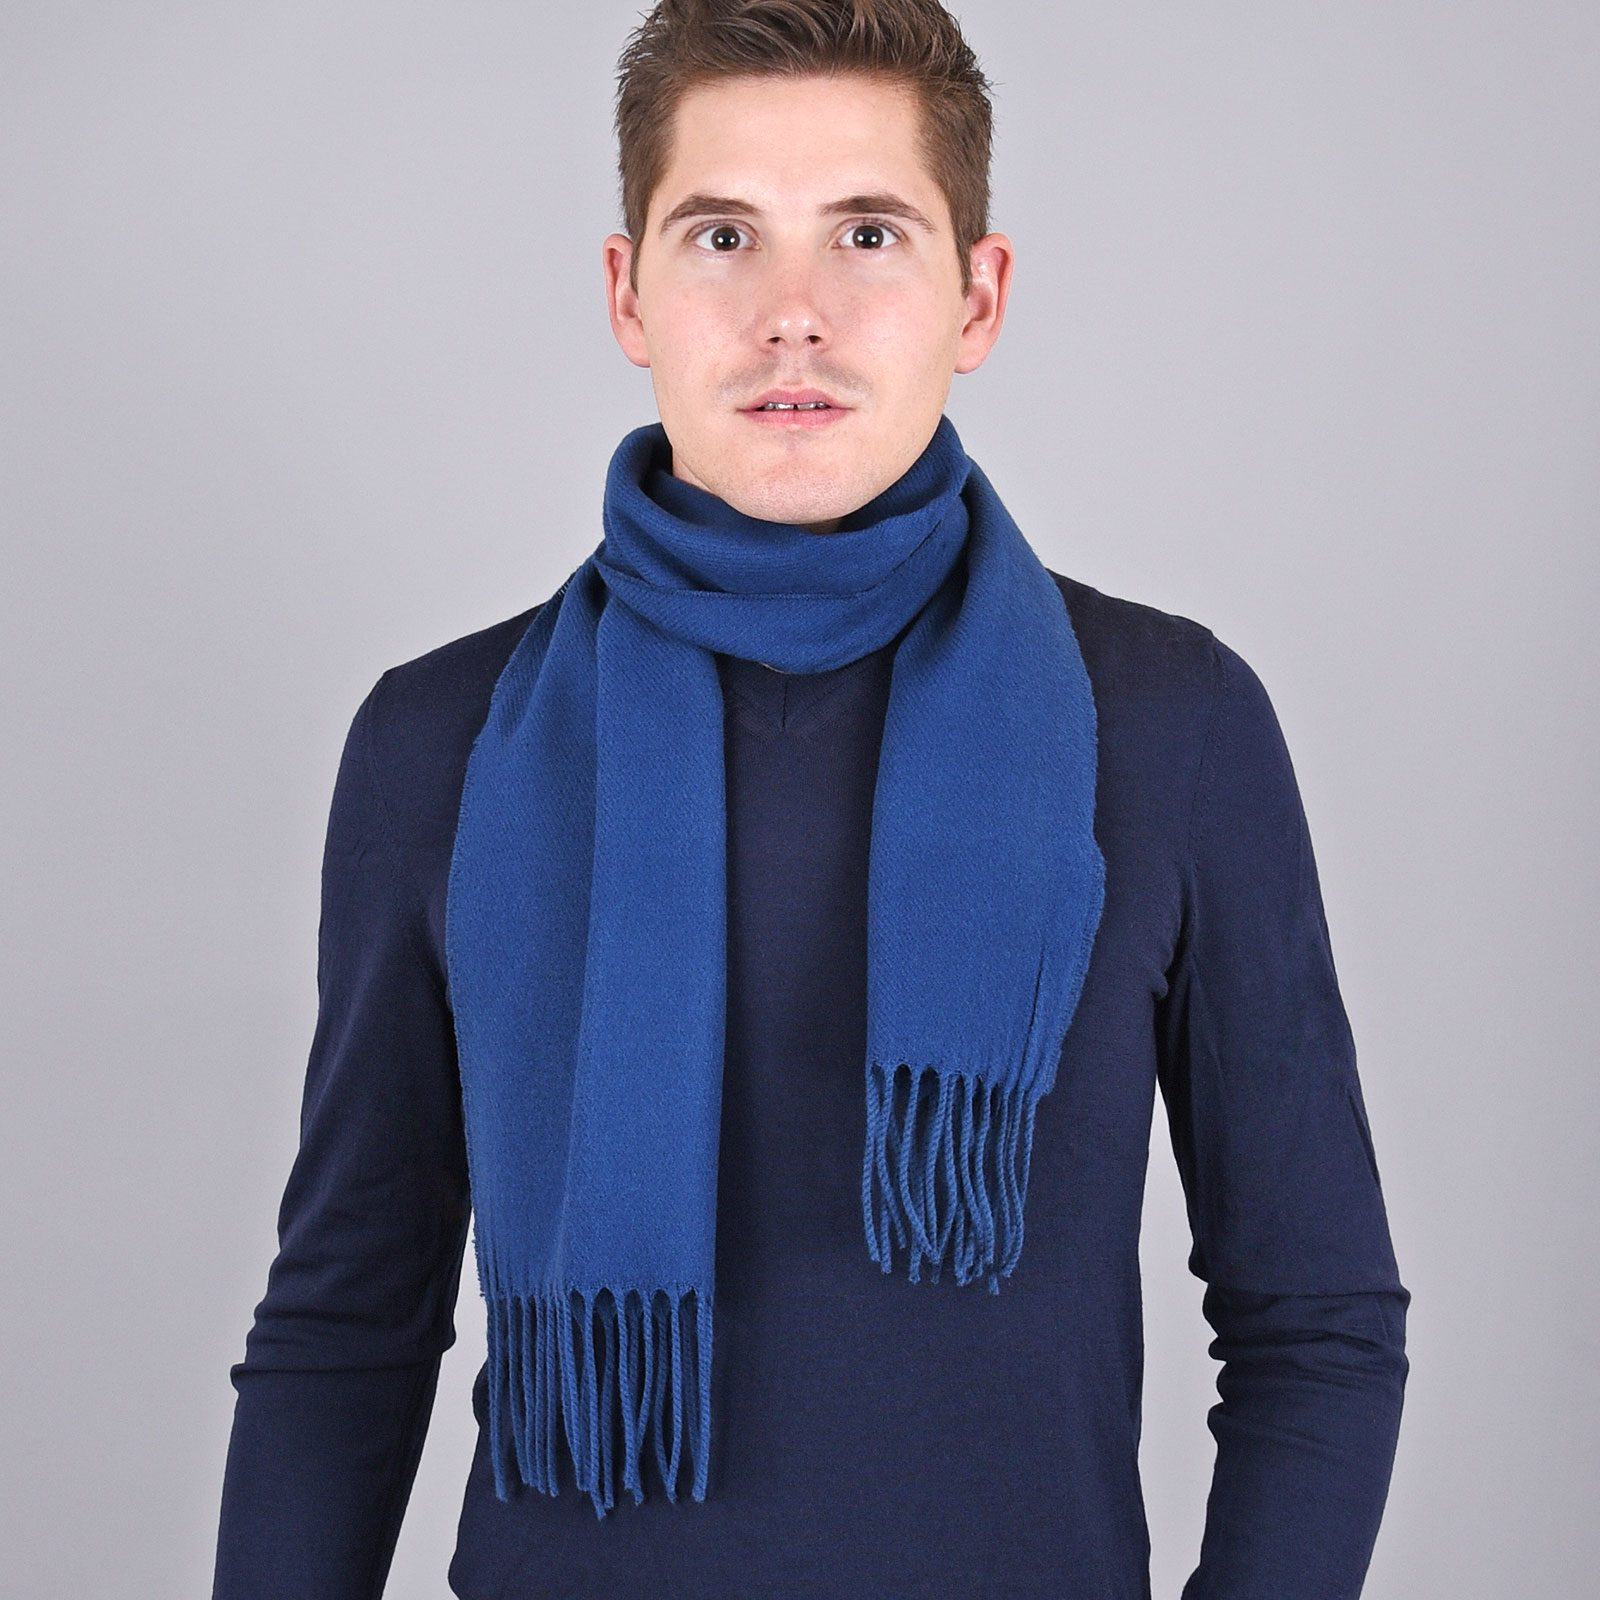 http://lookbook.allee-du-foulard.fr/wp-content/uploads/2018/11/AT-03233-VH16-echarpe-homme-a-franges-bleue-fabrication-francaise-1600x1600.jpg